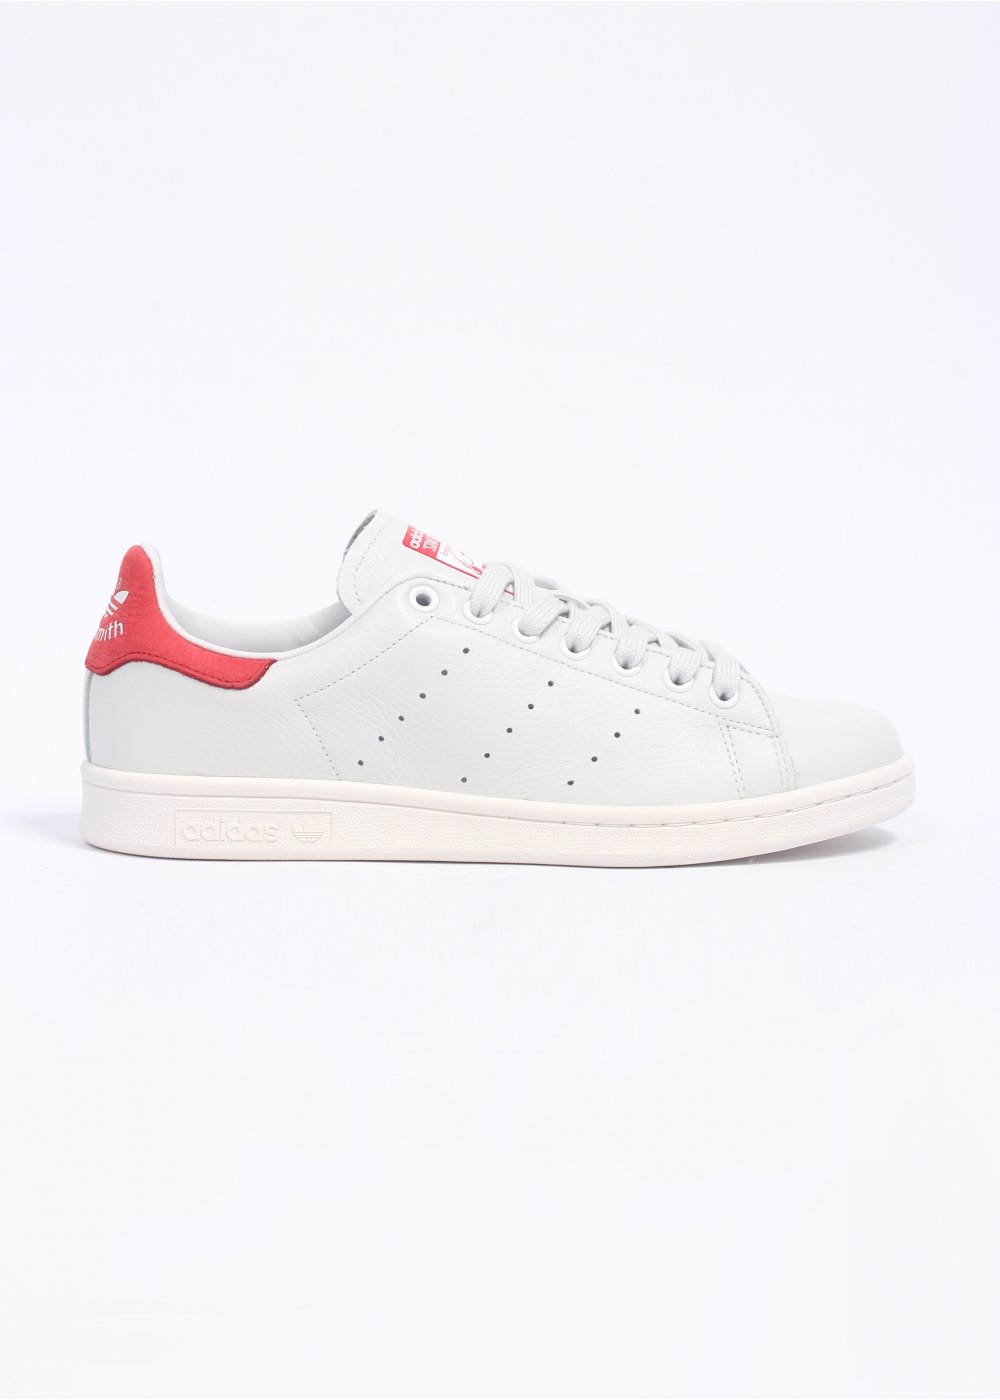 6b5a1a1cd71828 adidas Originals Footwear Stan Smith Vintage Leather Trainers - Neo ...